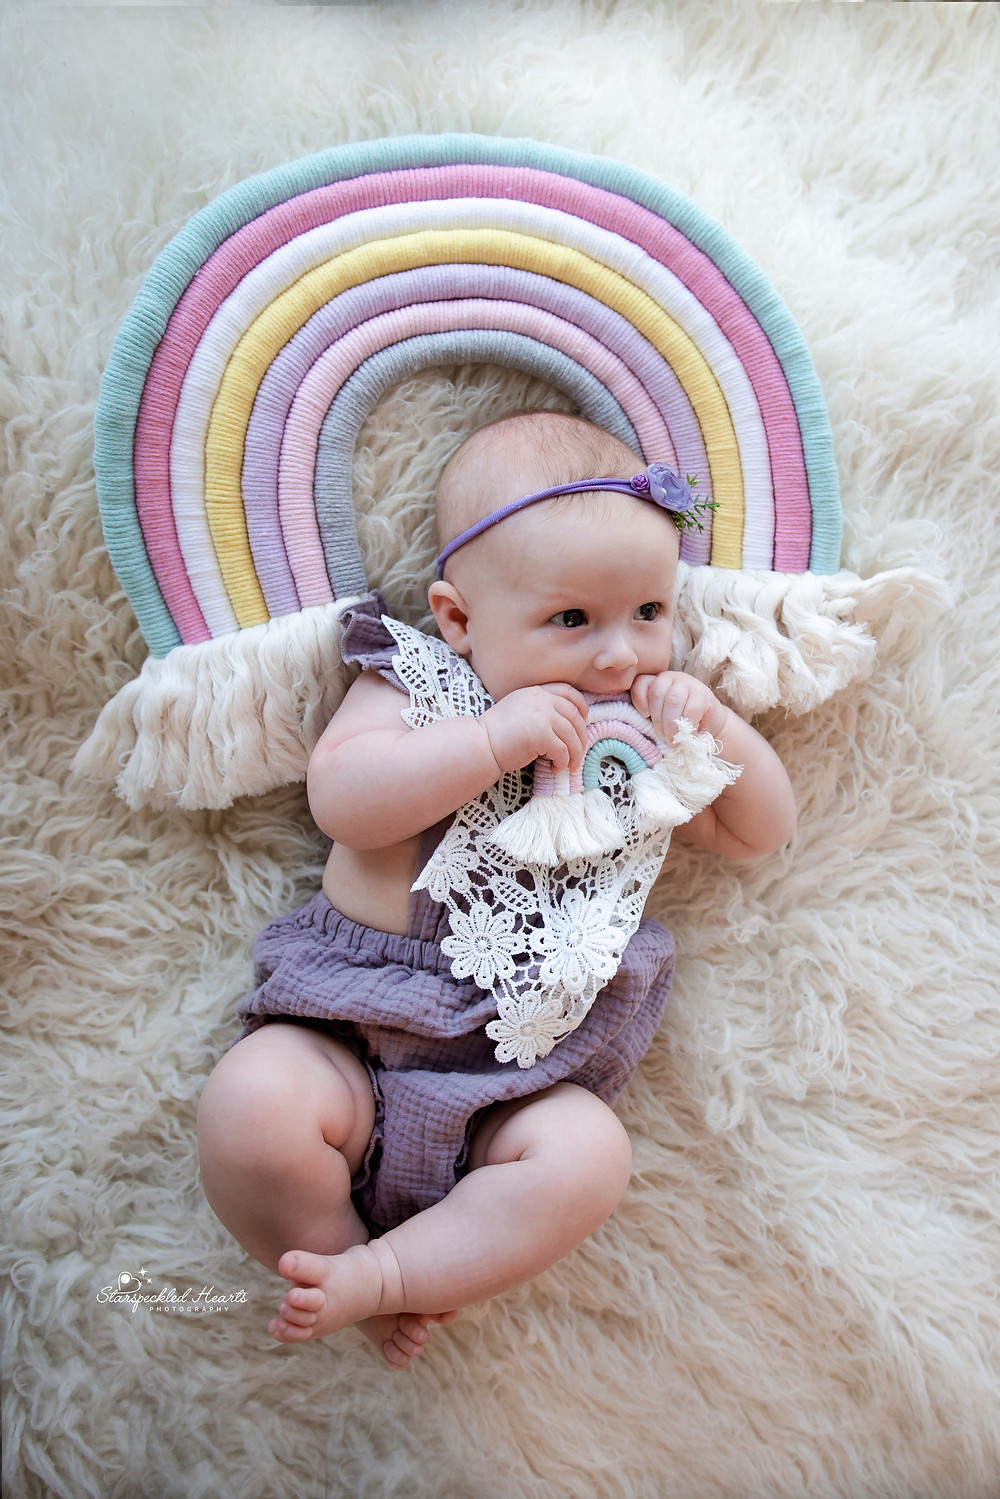 baby girl dressed in lilac lying on a white rug with a rainbow over her head